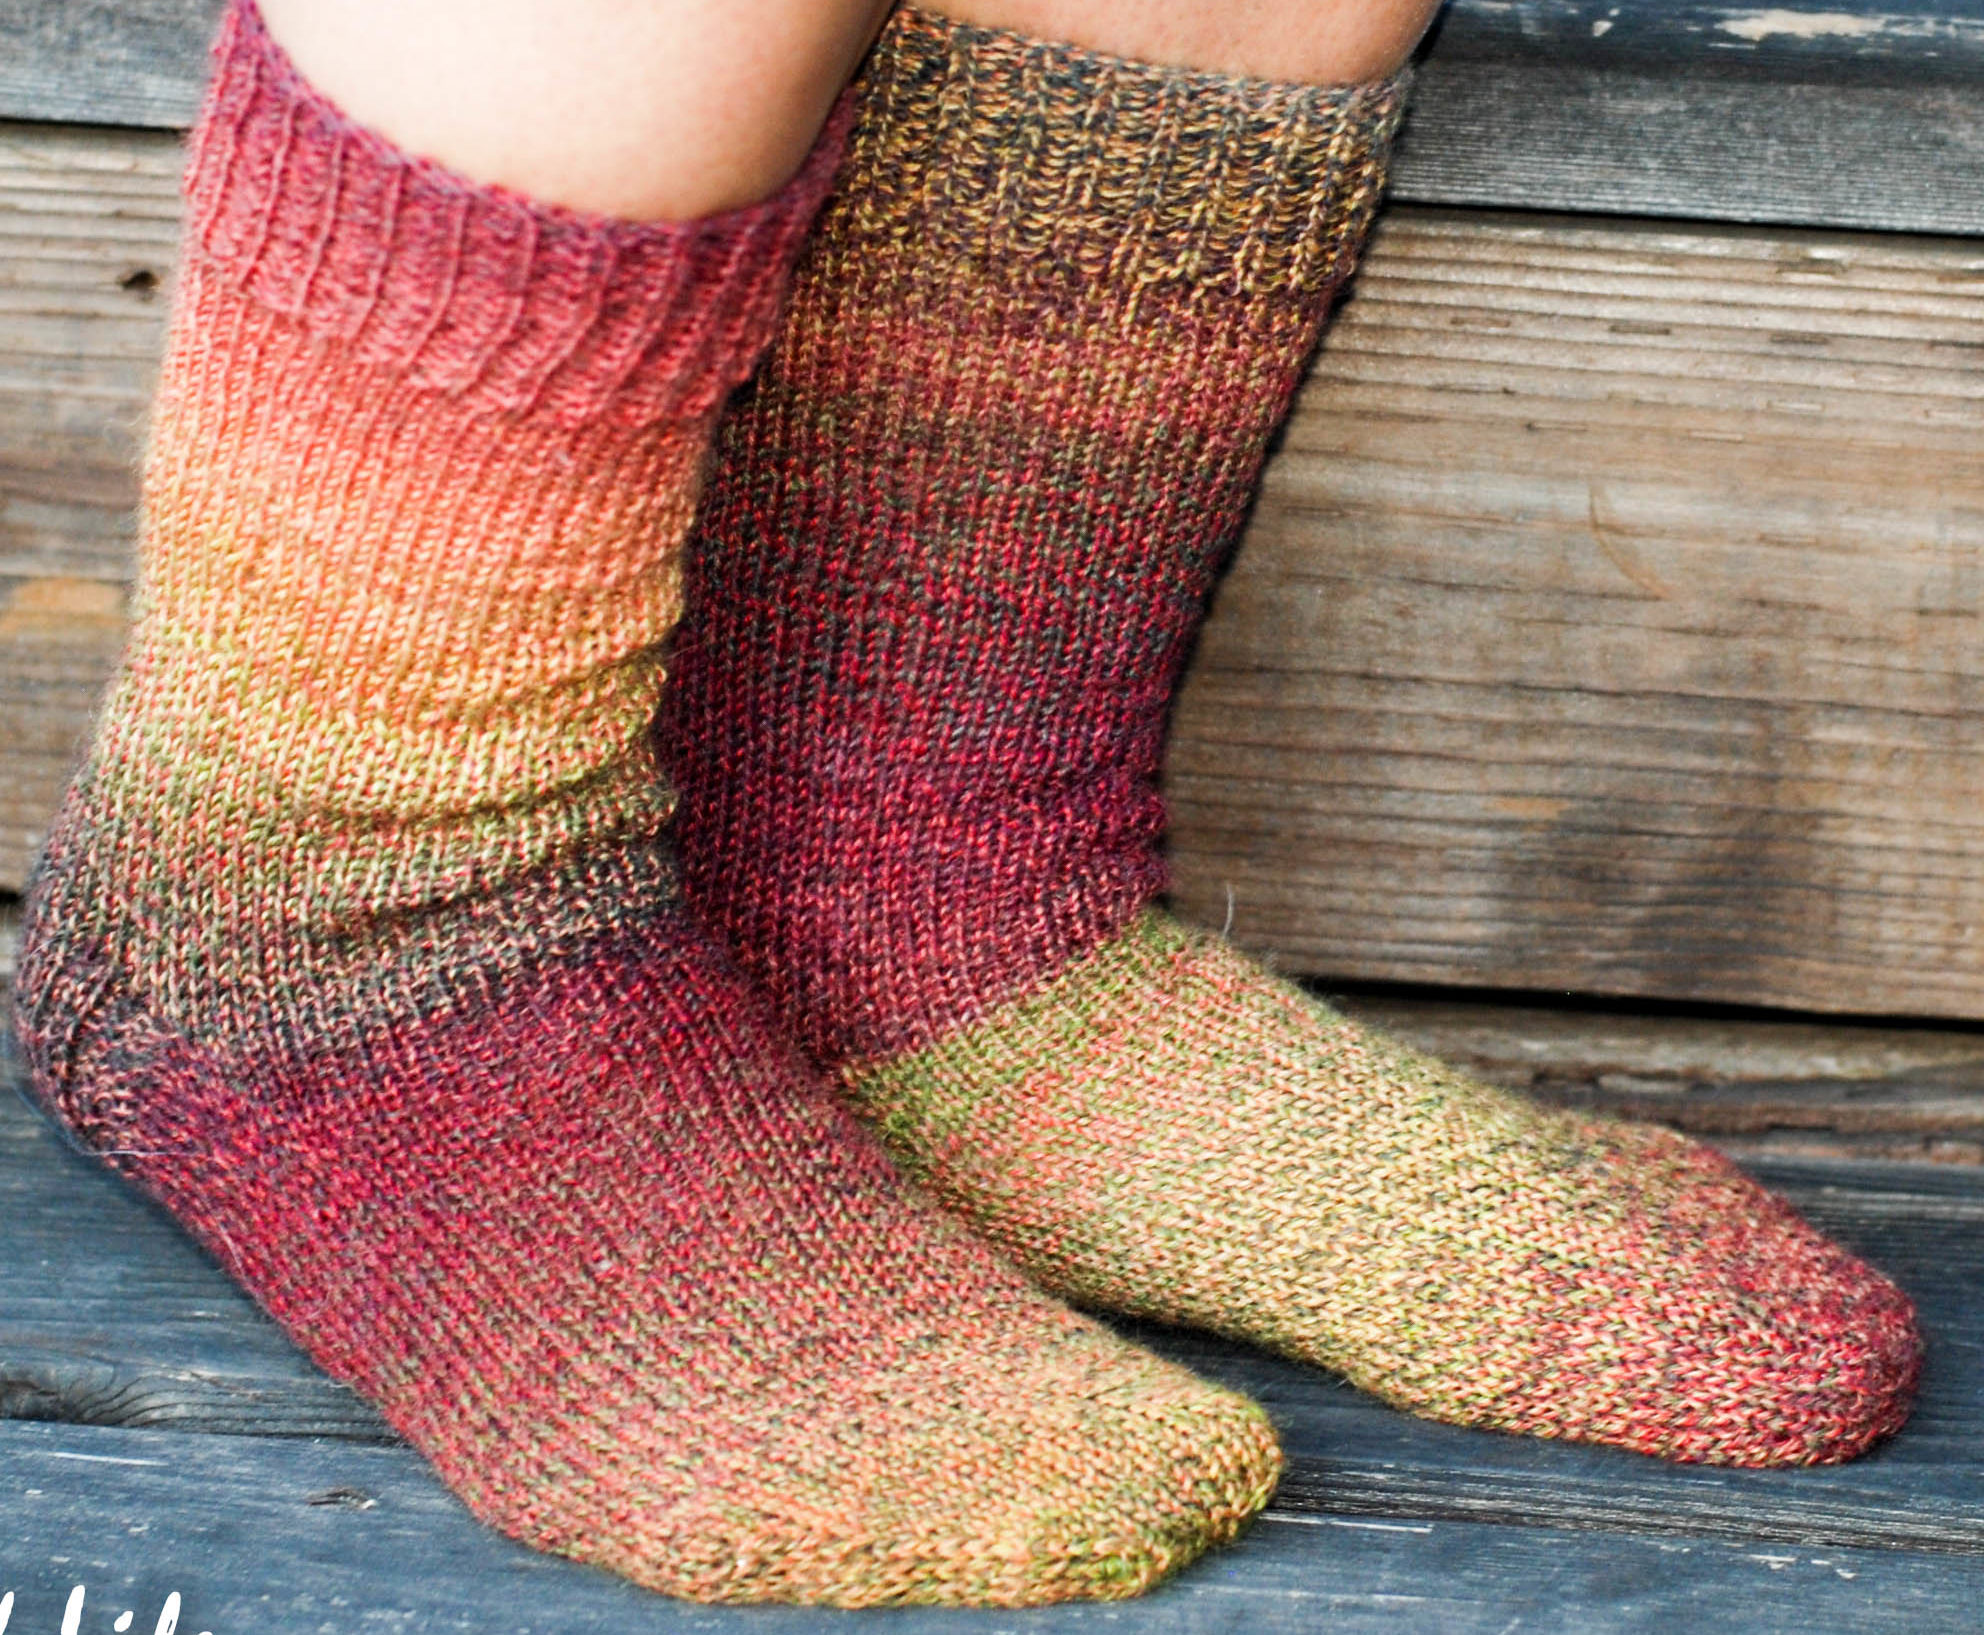 How to knit socks with knitting needles so that they warm not only the legs, but also the soul